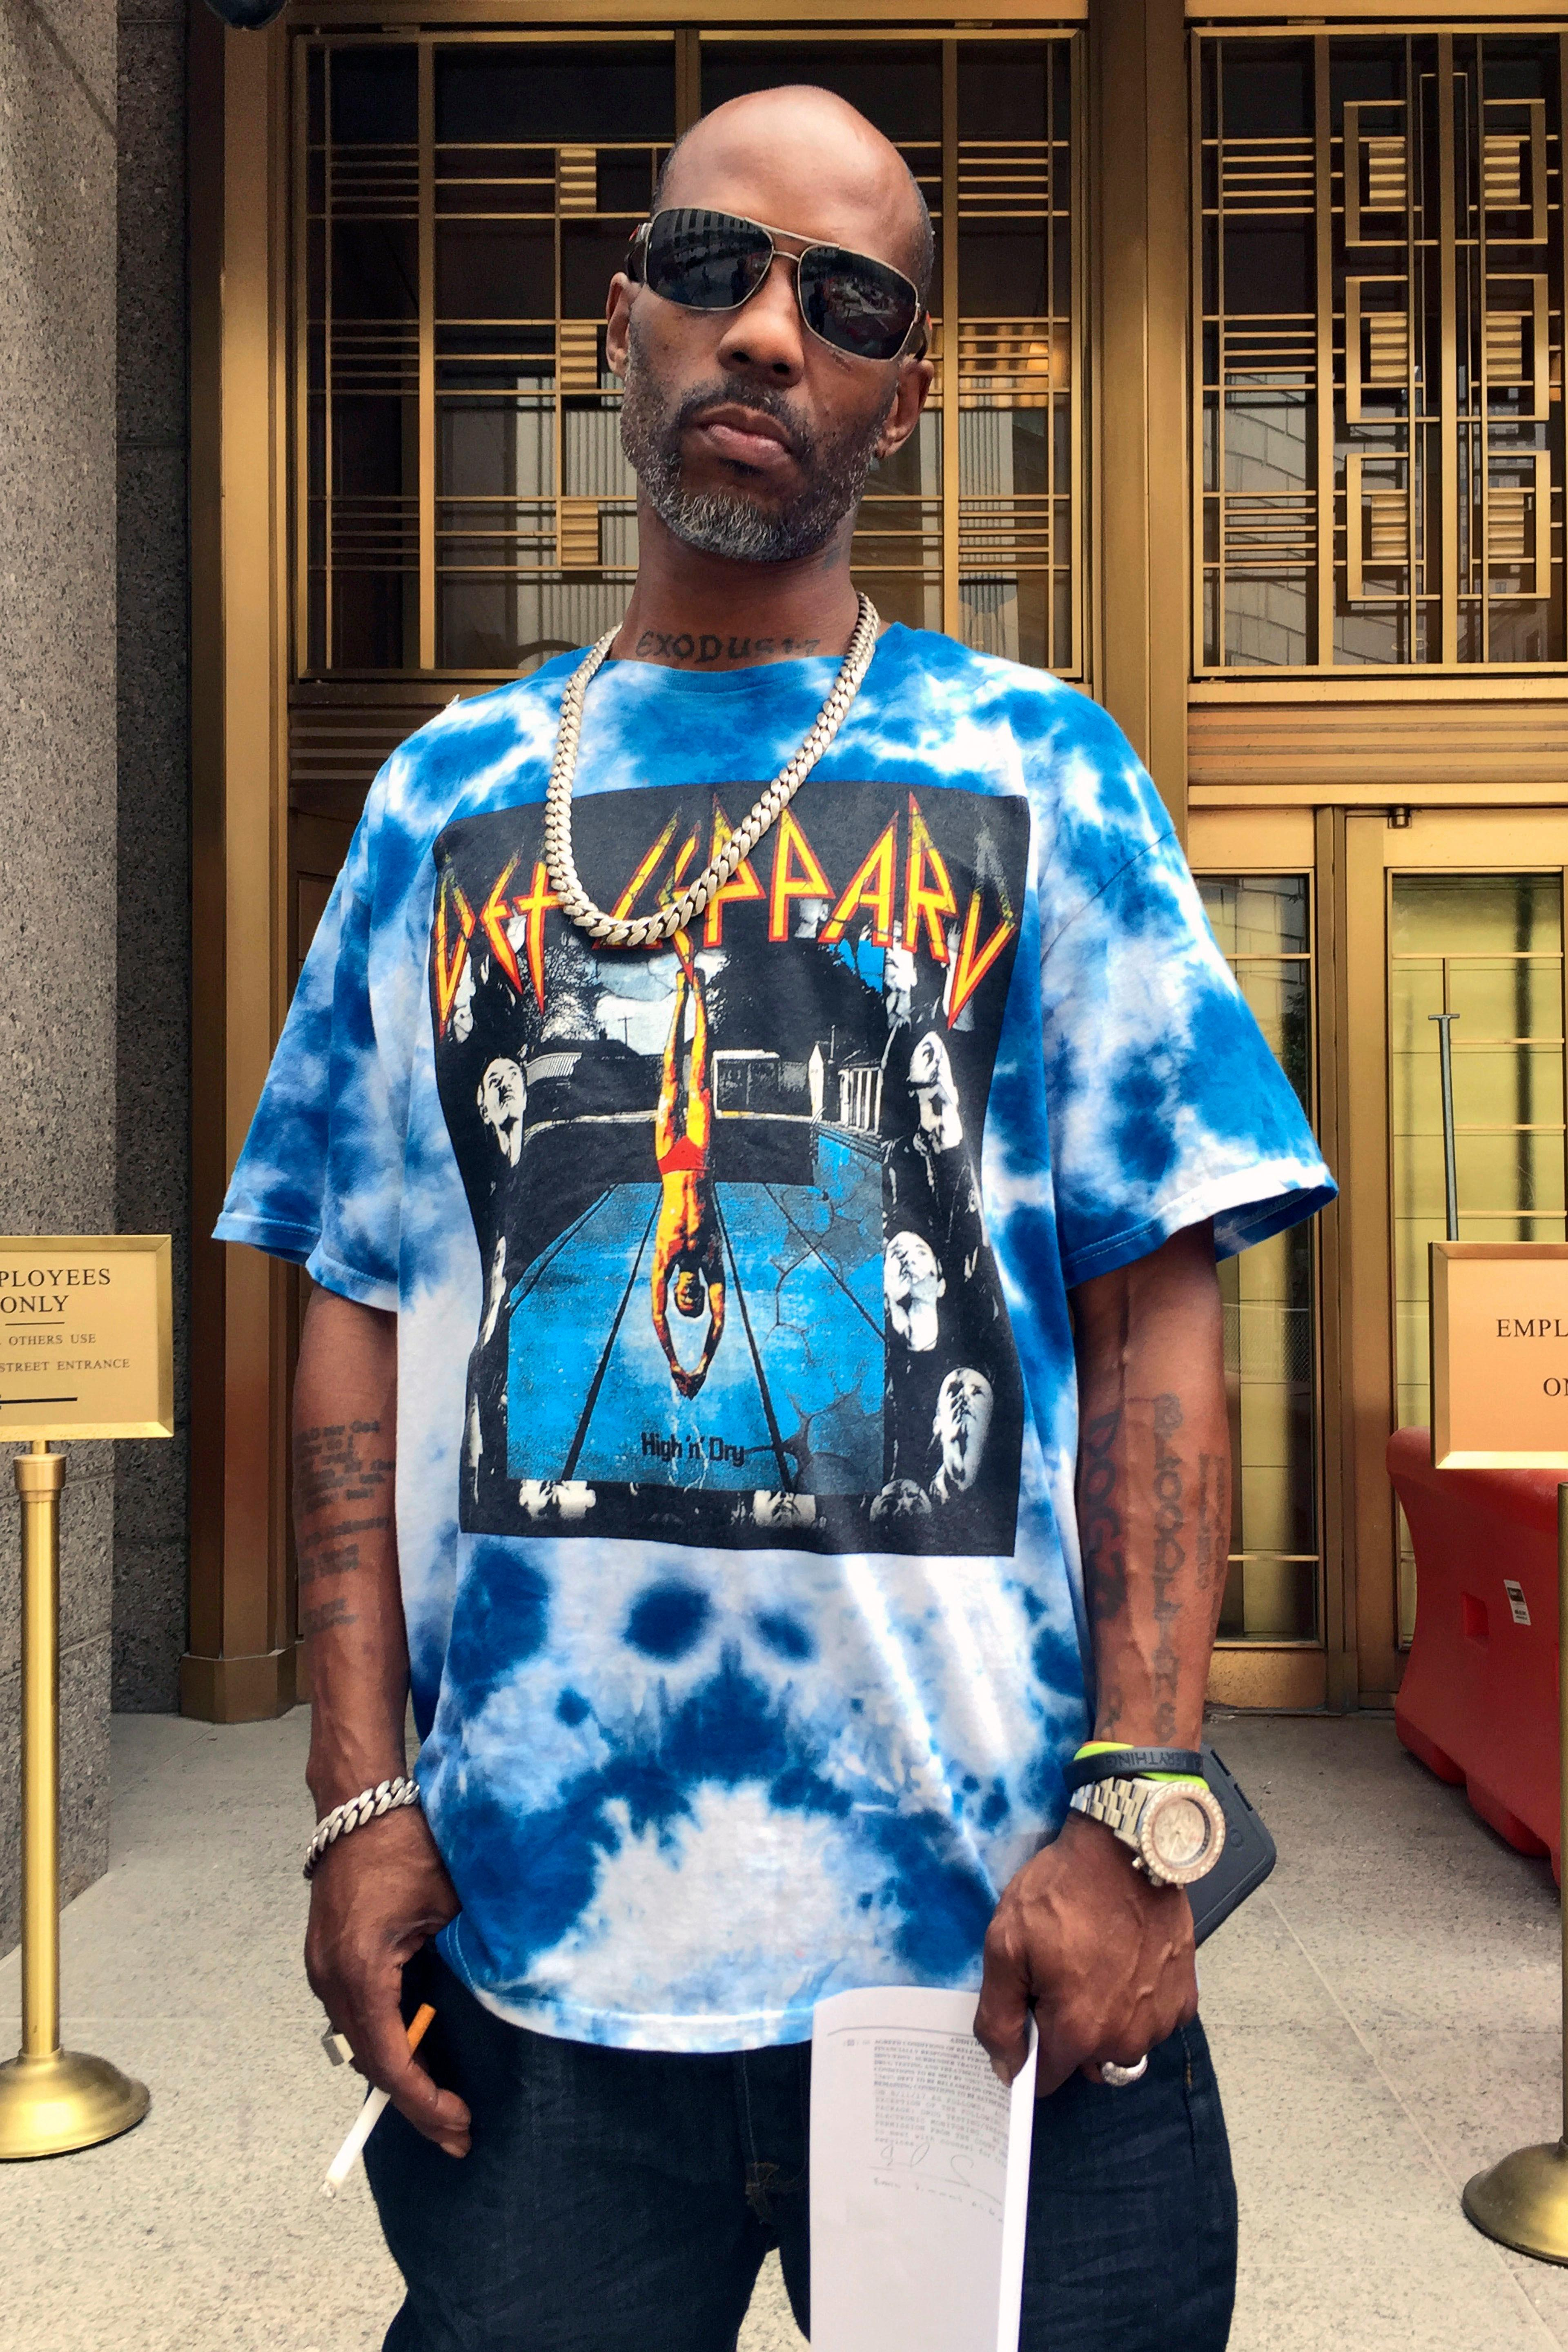 Rapper DMX, whose given name is Earl Simmons, poses for a photo outside federal court, in New York, Friday, Aug. 11, 2017. DMX, who prosecutors say owes $1.7 million in taxes, was ordered confined to his suburban New York City home Friday by a judge who said he repeatedly violated bail conditions on the tax fraud charges. (AP Photo/Larry Neumeister)